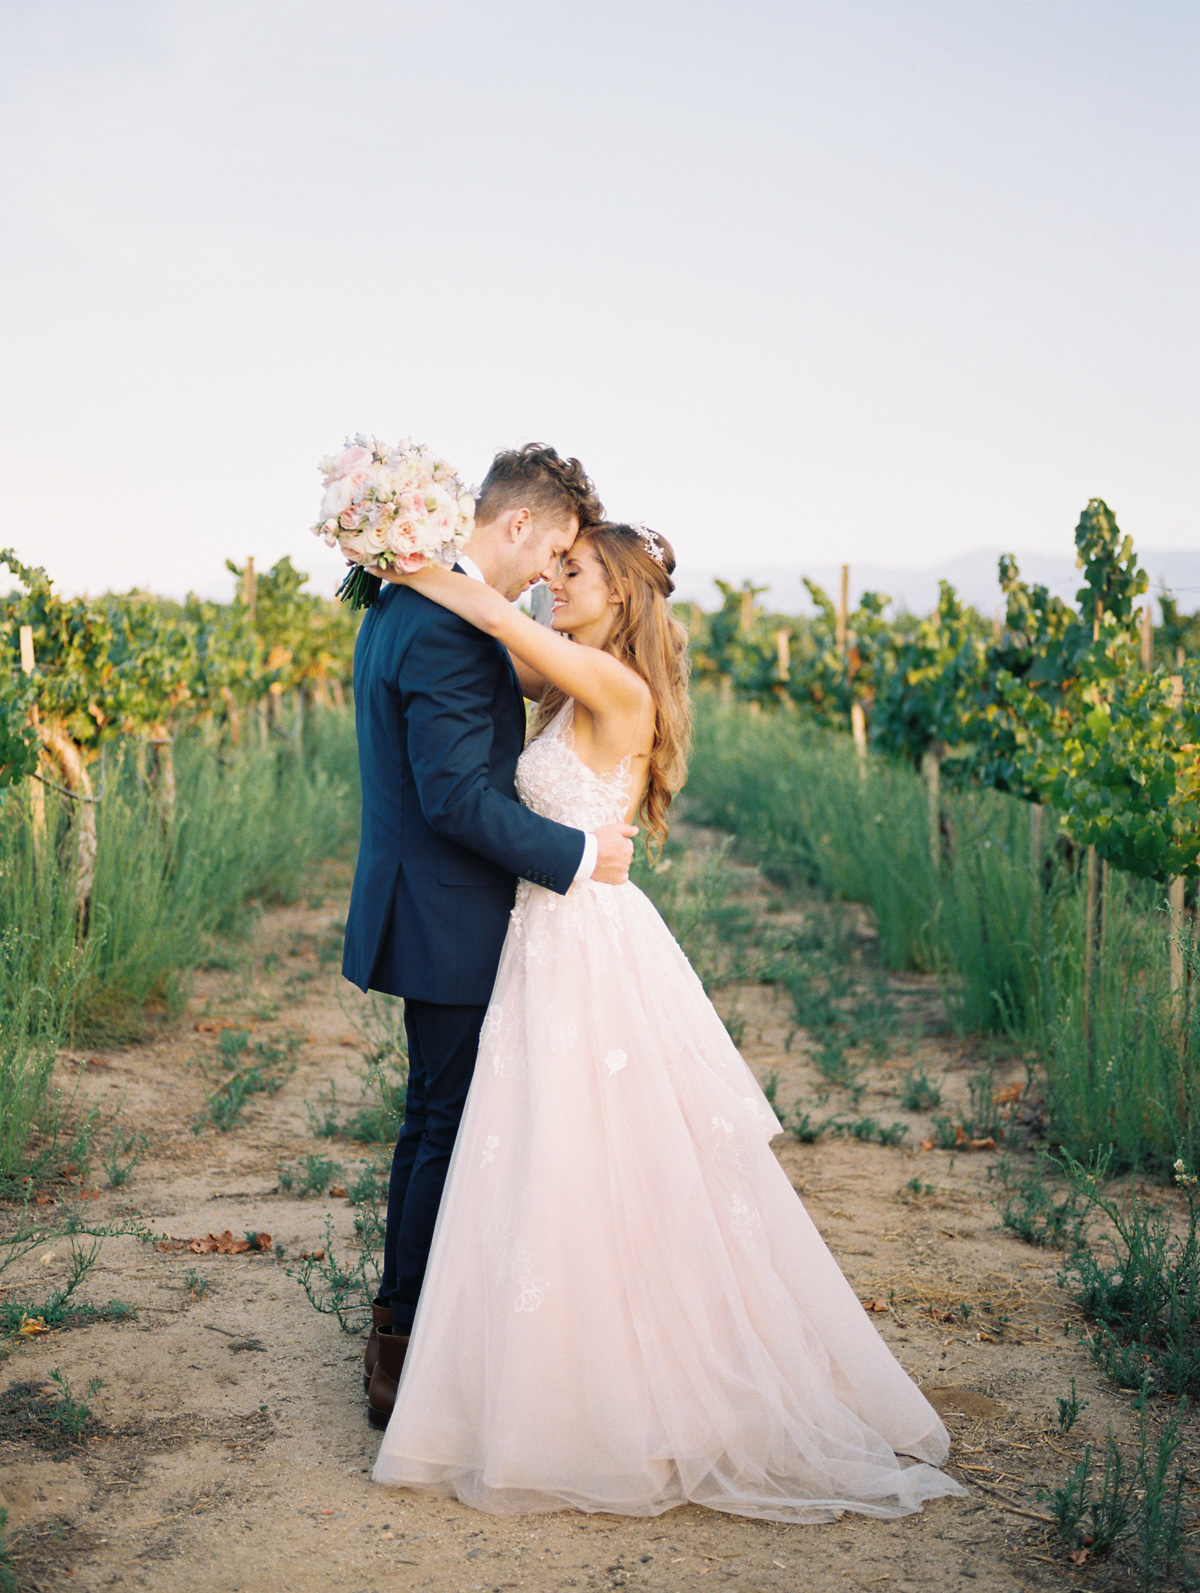 Harrison & Jocelyne's gorgeous Temecula wedding day at Wiens Family Cellars captured by Temecula wedding photographers Betsy & John